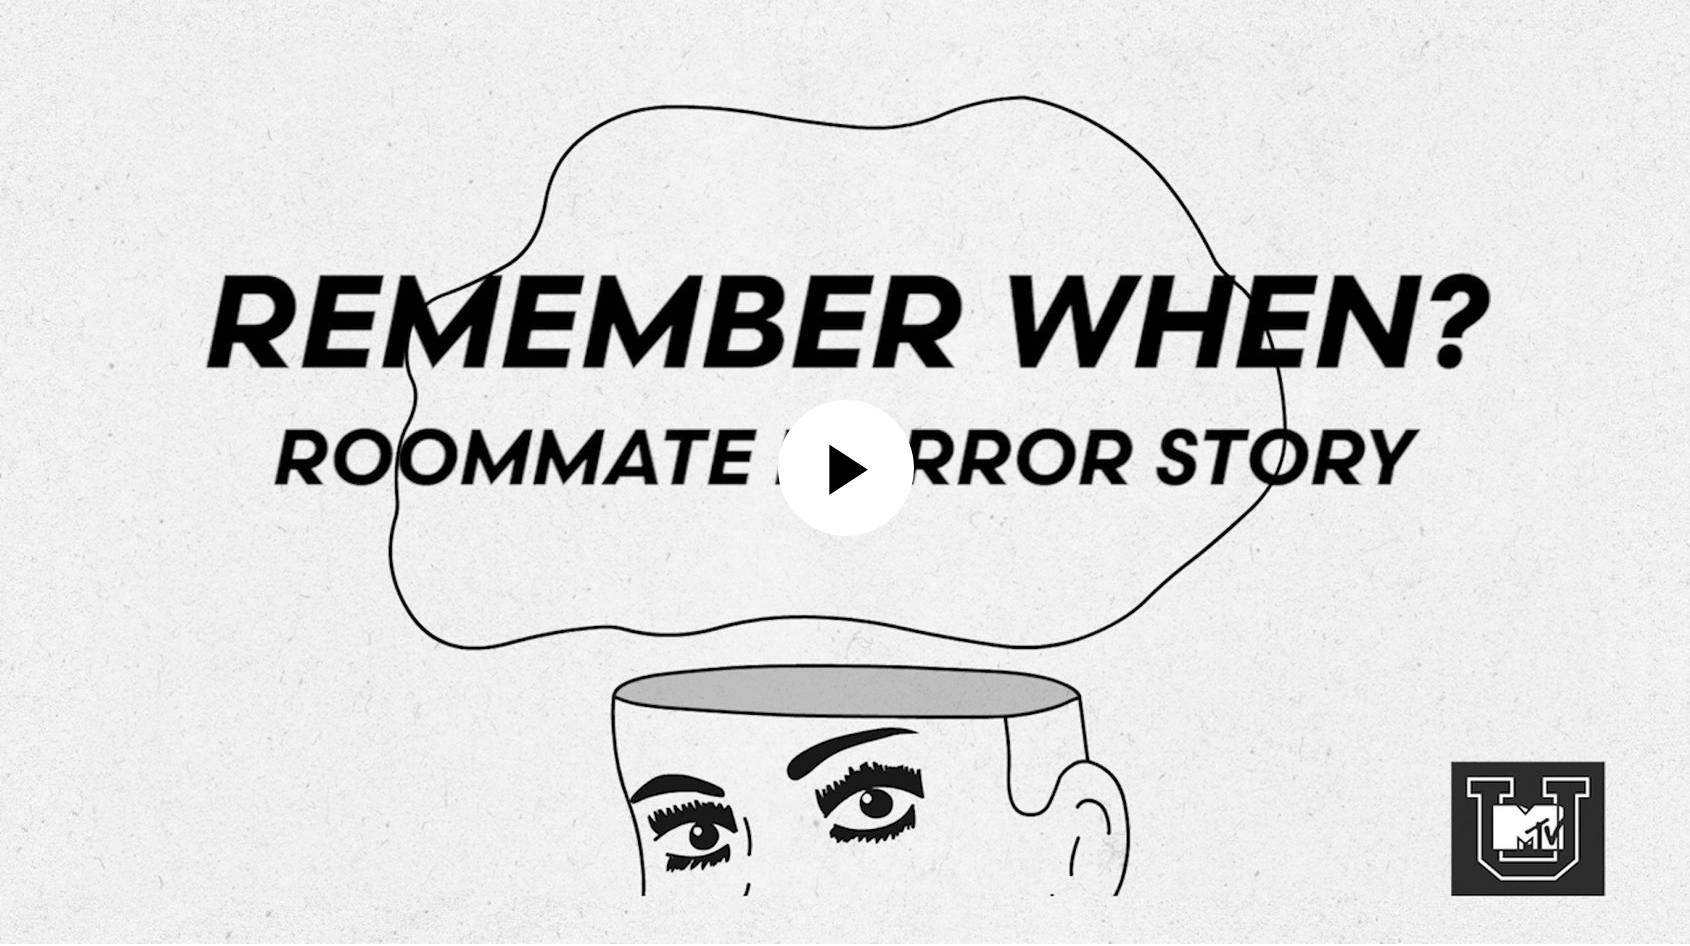 Think your roommate situation is bad? Brian recounts his roommate horror story in this episode of Remember When.